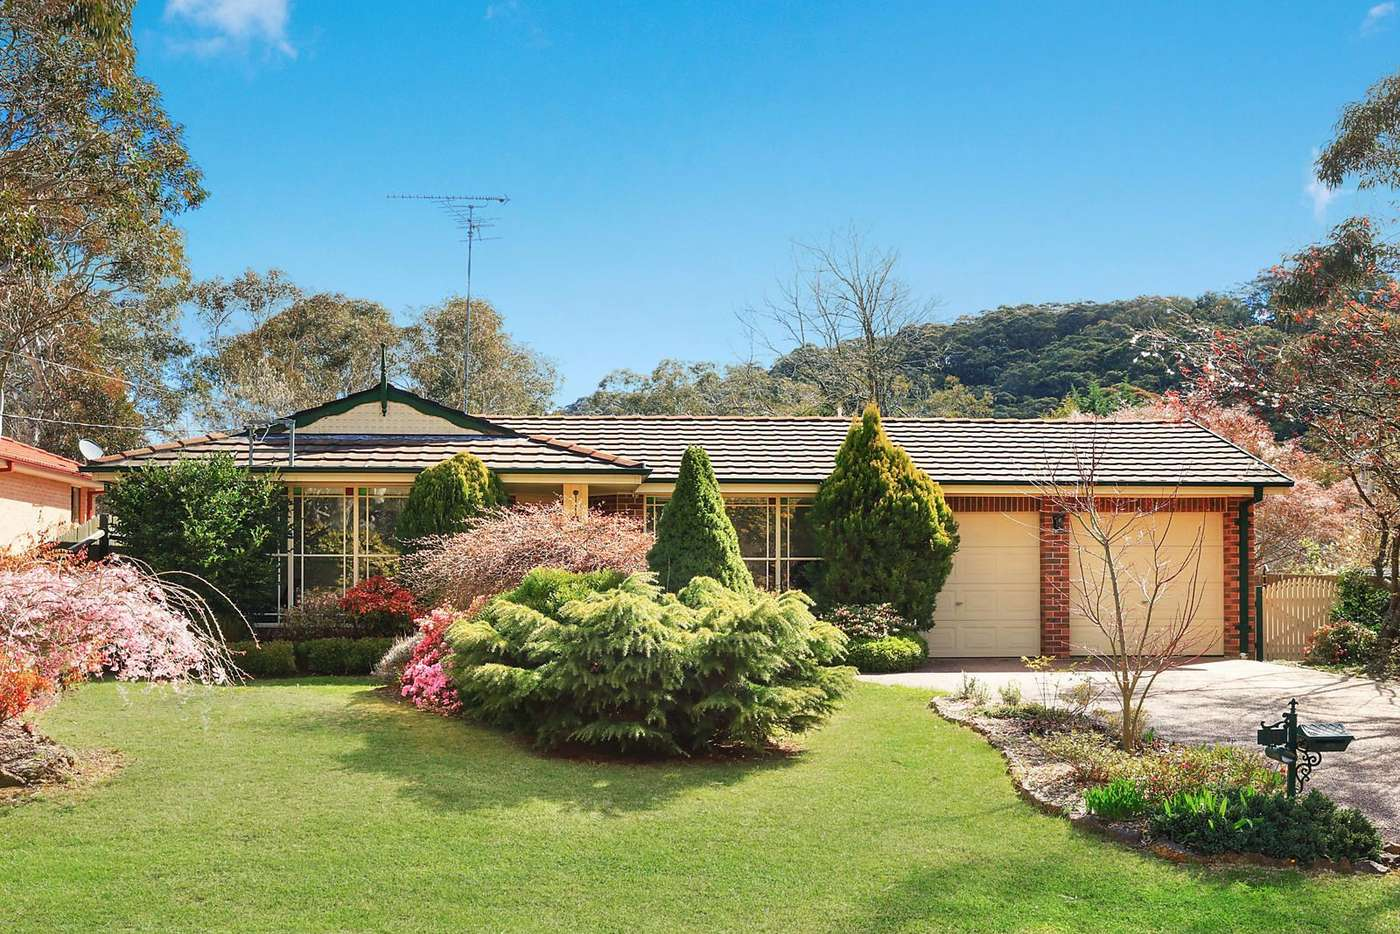 Main view of Homely house listing, 18 Dorset Street, Leura NSW 2780